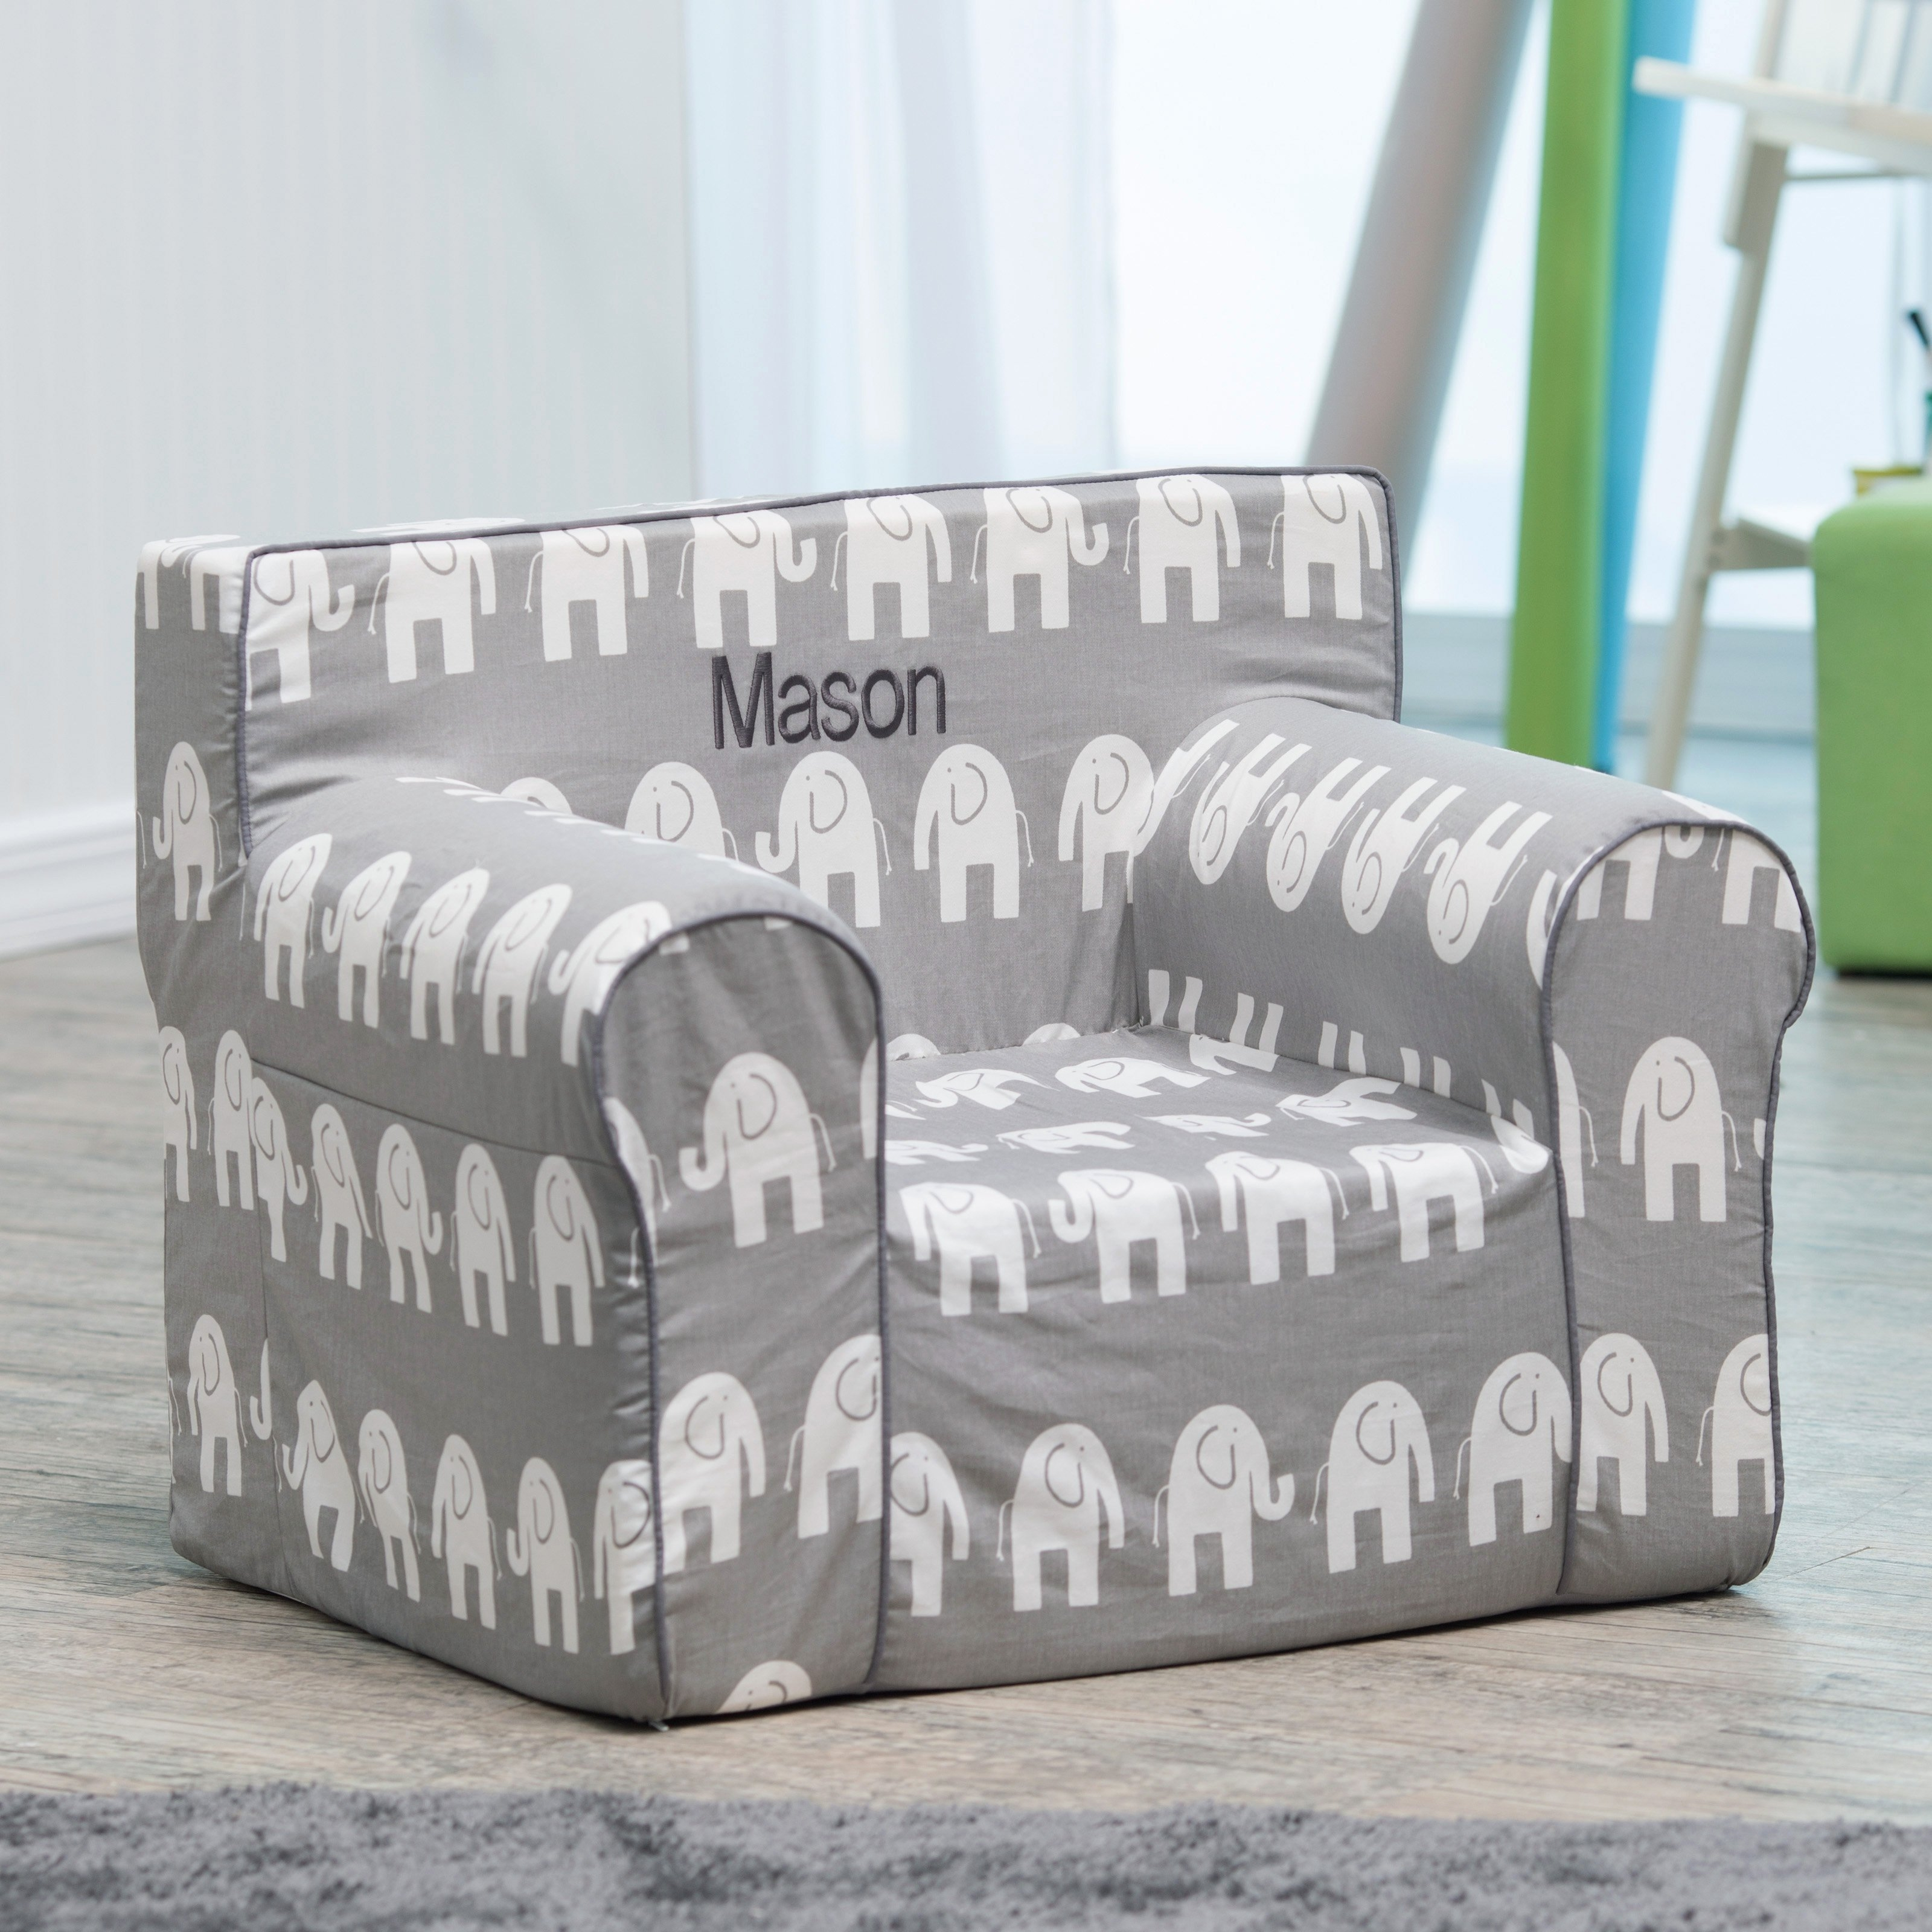 Here And There Personalized Kids Chair Gray Elephant Kids Inside Personalized Kids Chairs And Sofas (Image 3 of 15)